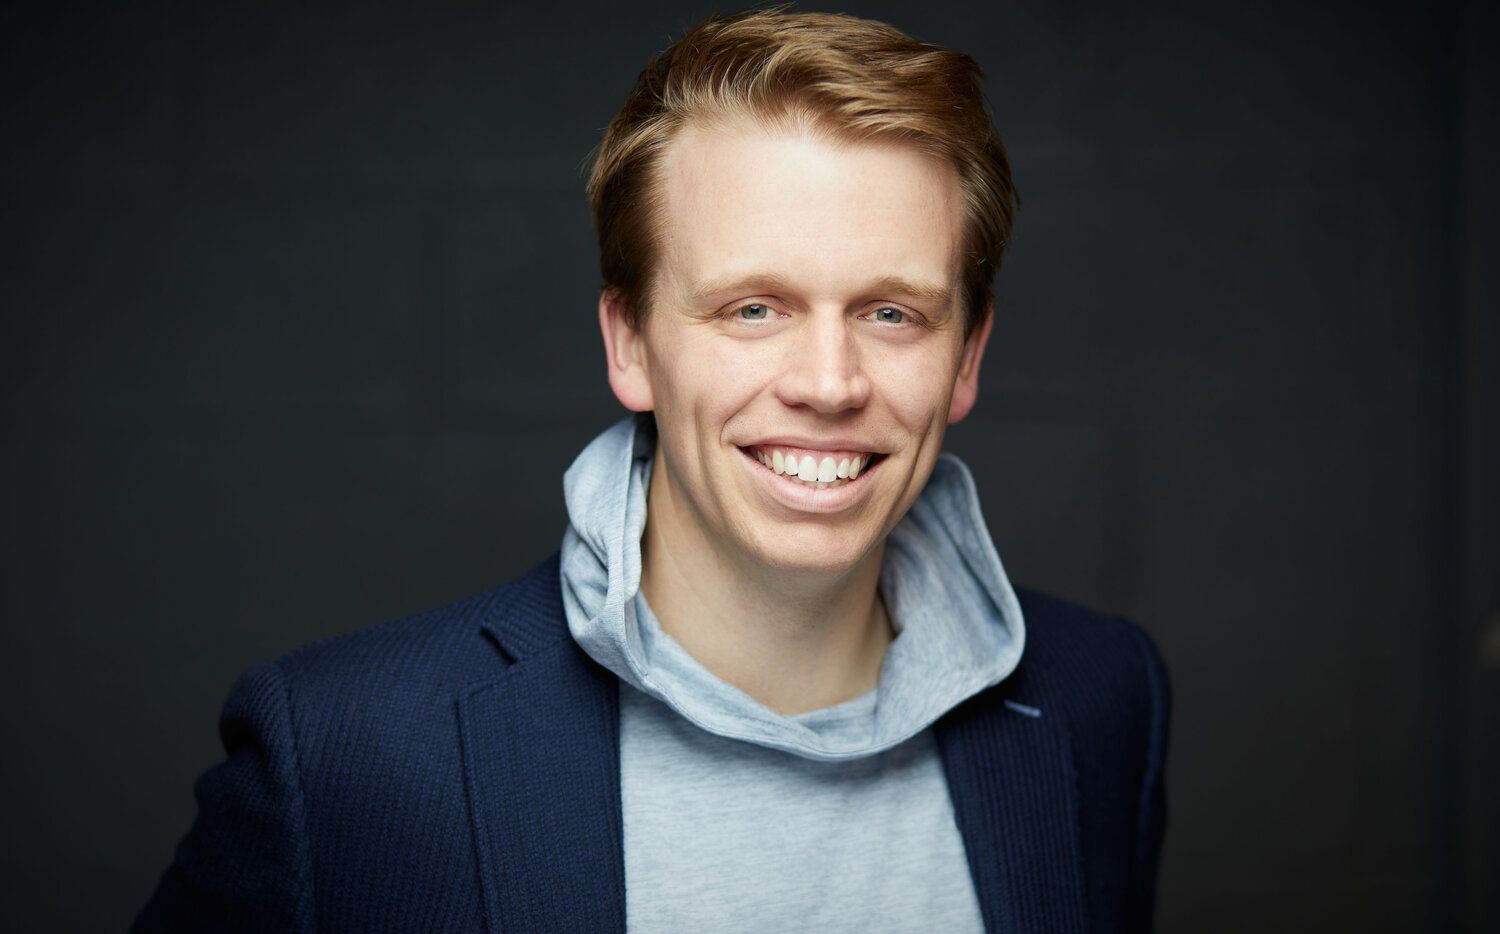 Dottid founder and CEO Kyle Waldrep